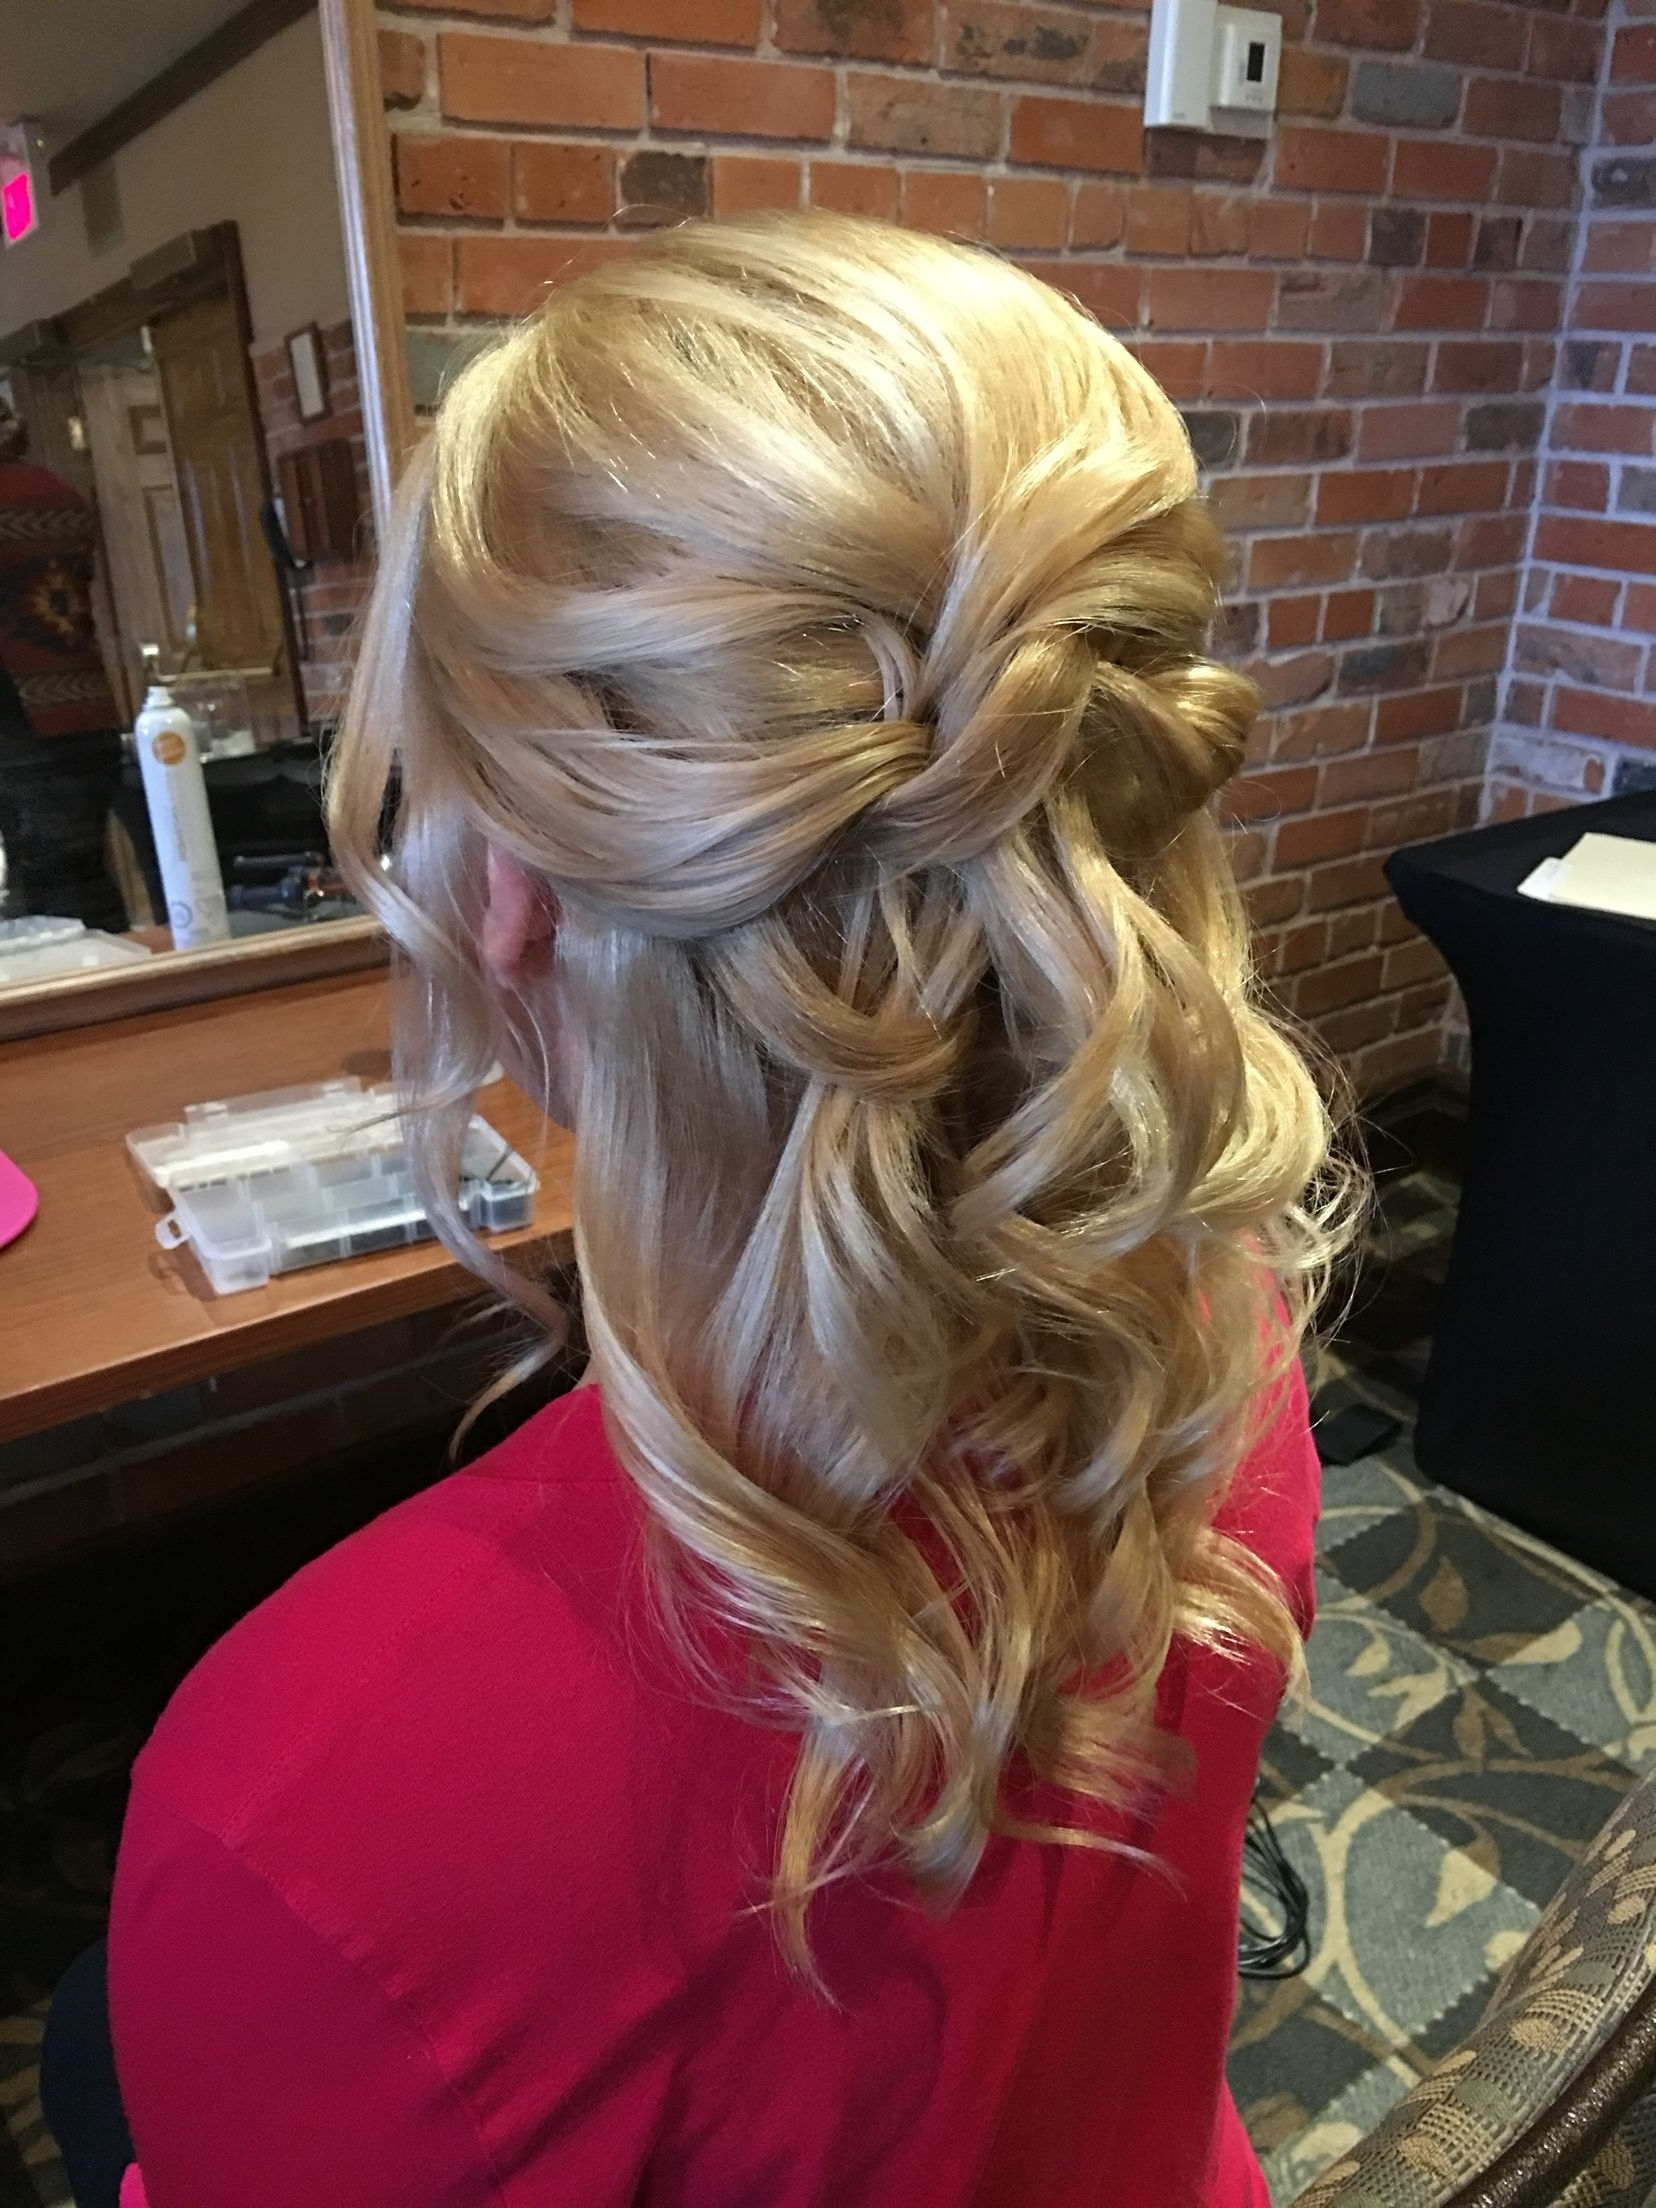 Famous Wedding Hairstyles For Mother Of Bride Throughout Half Up Half Down Wedding Hair For Bride Or Mother Of The Bride (View 5 of 15)